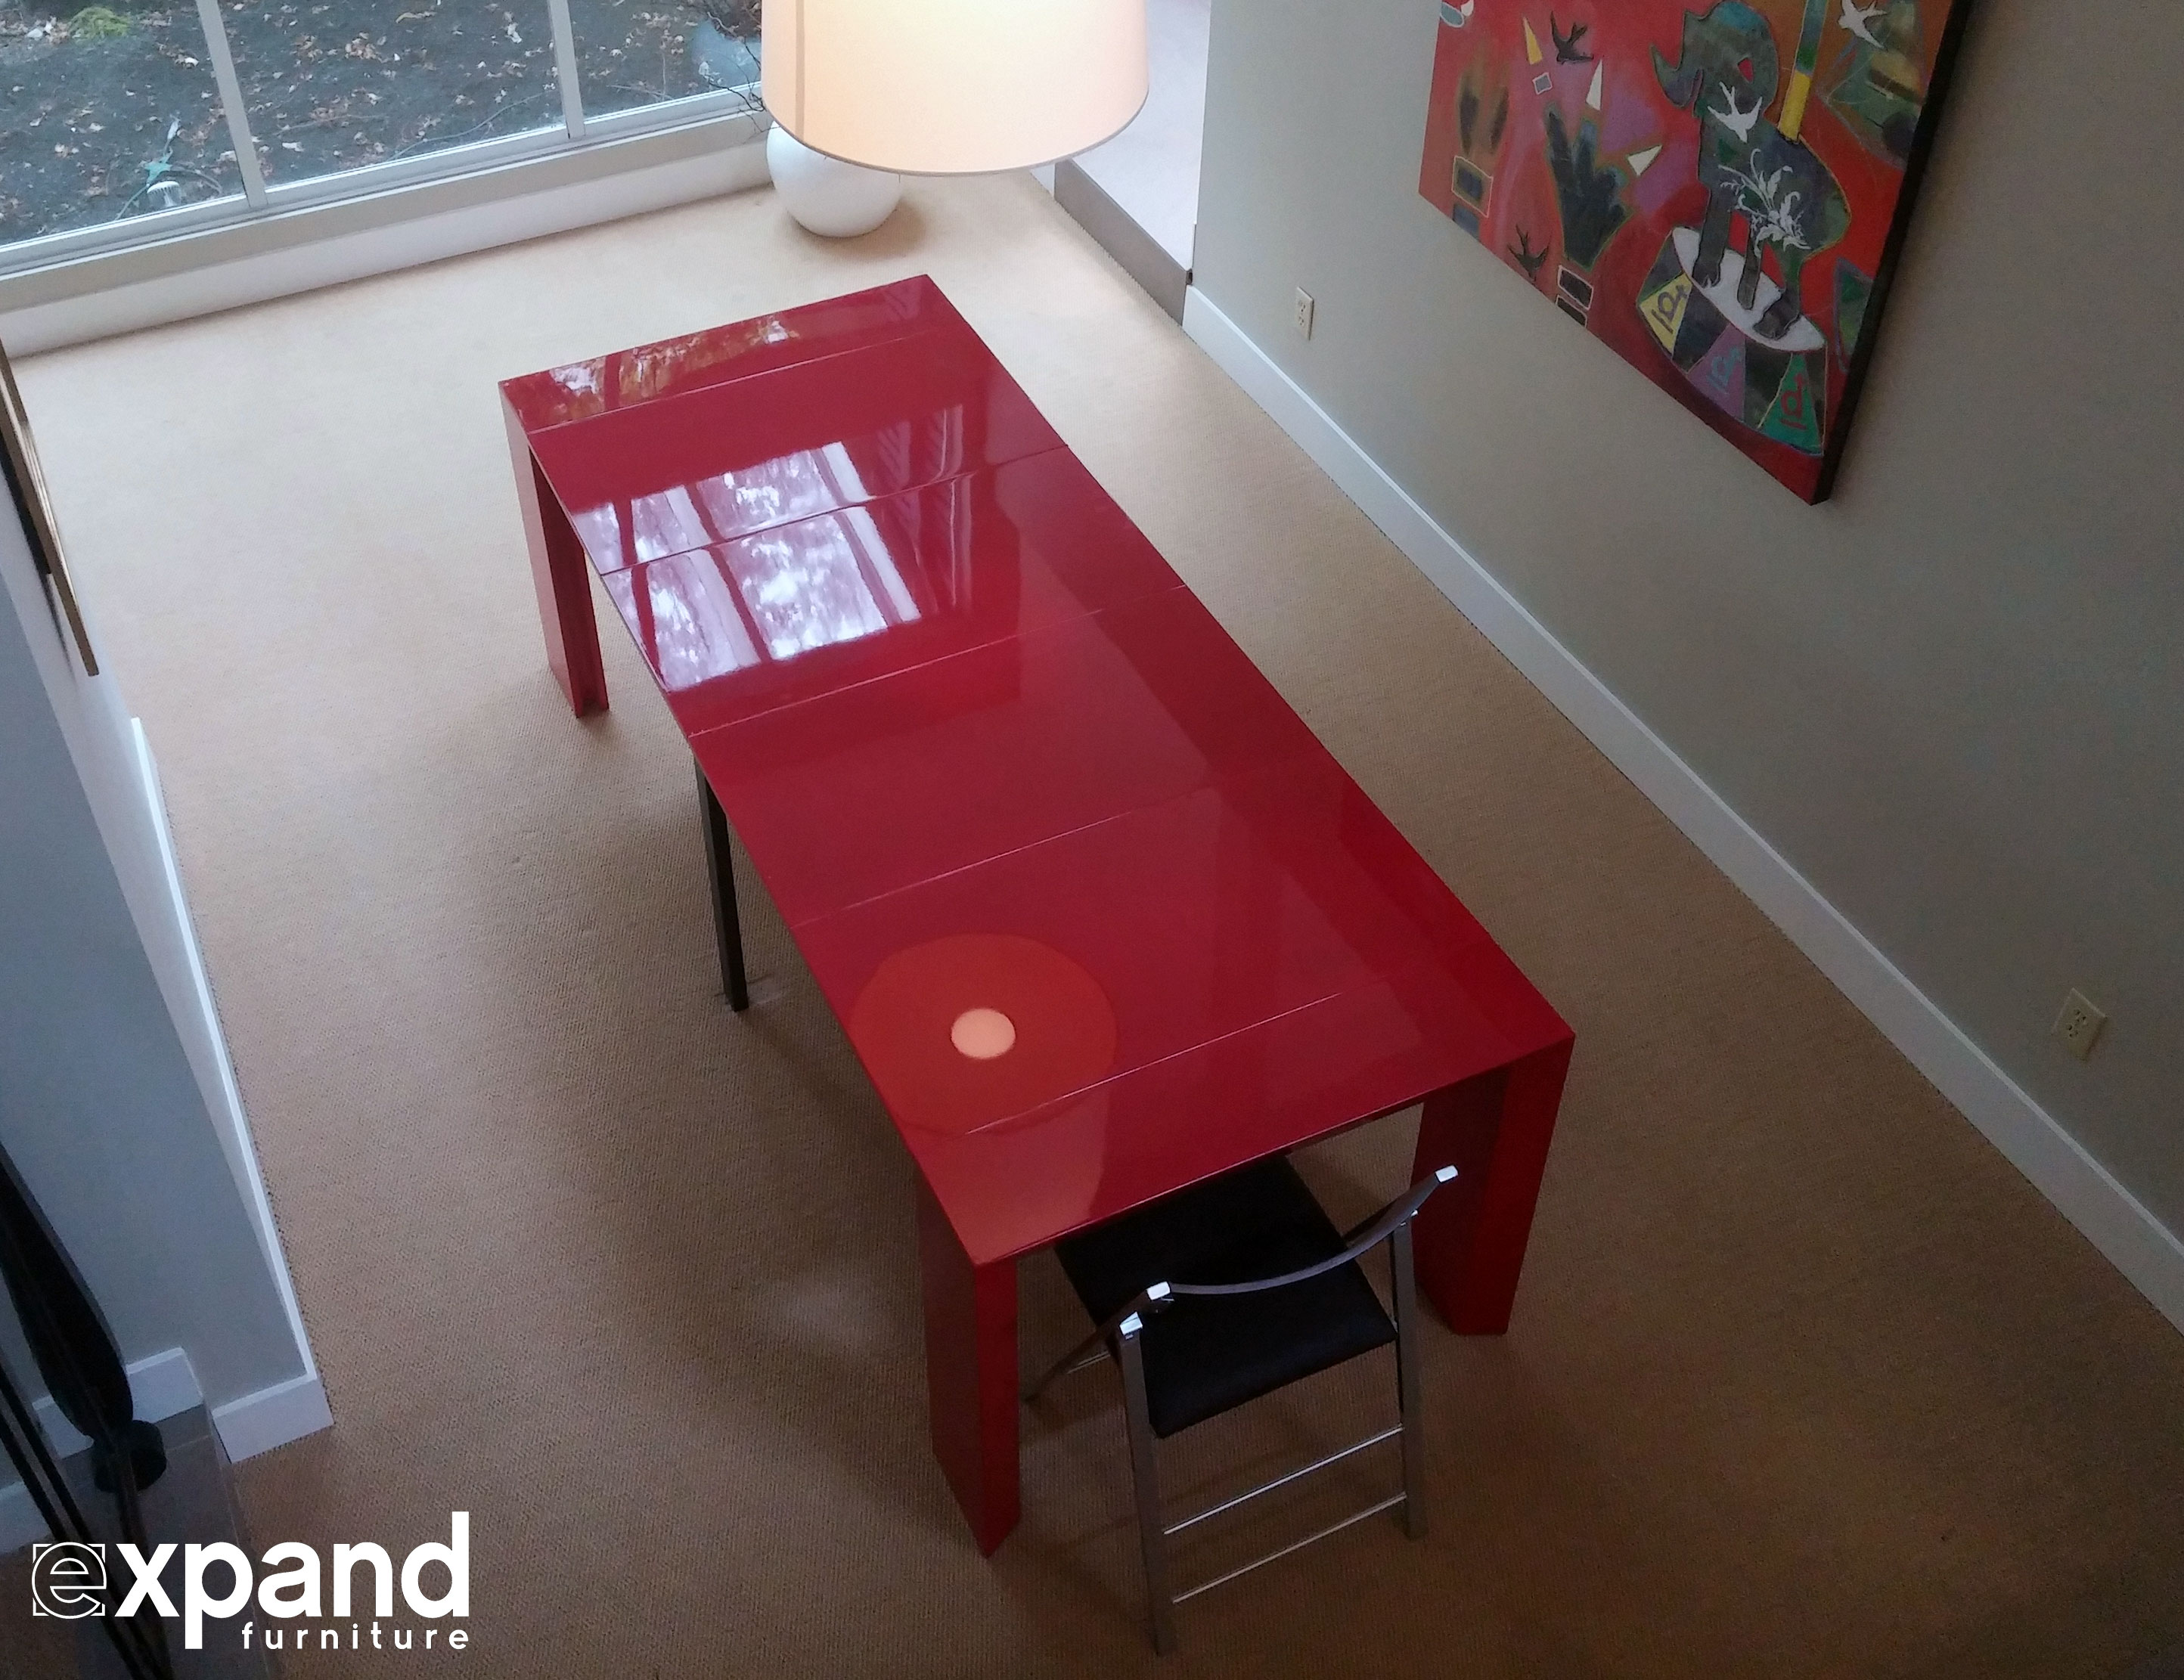 Junior Giant Edge Modern Dining Table Expand Furniture